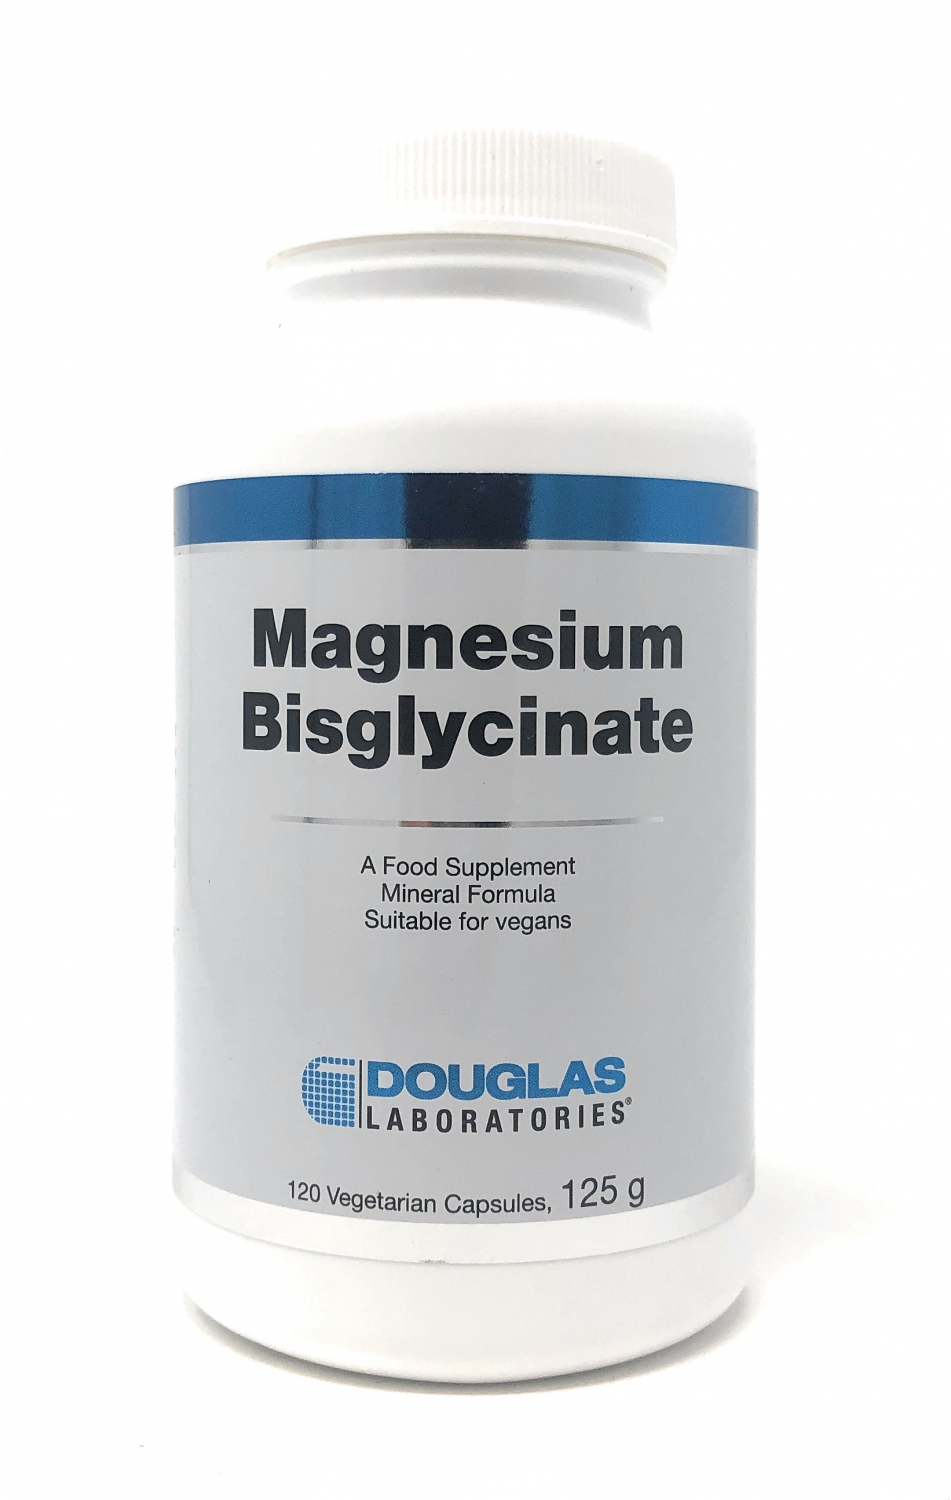 Douglas Laboratories Europe Magnesium Bisglycinate 120 veg. Kapseln (125g)